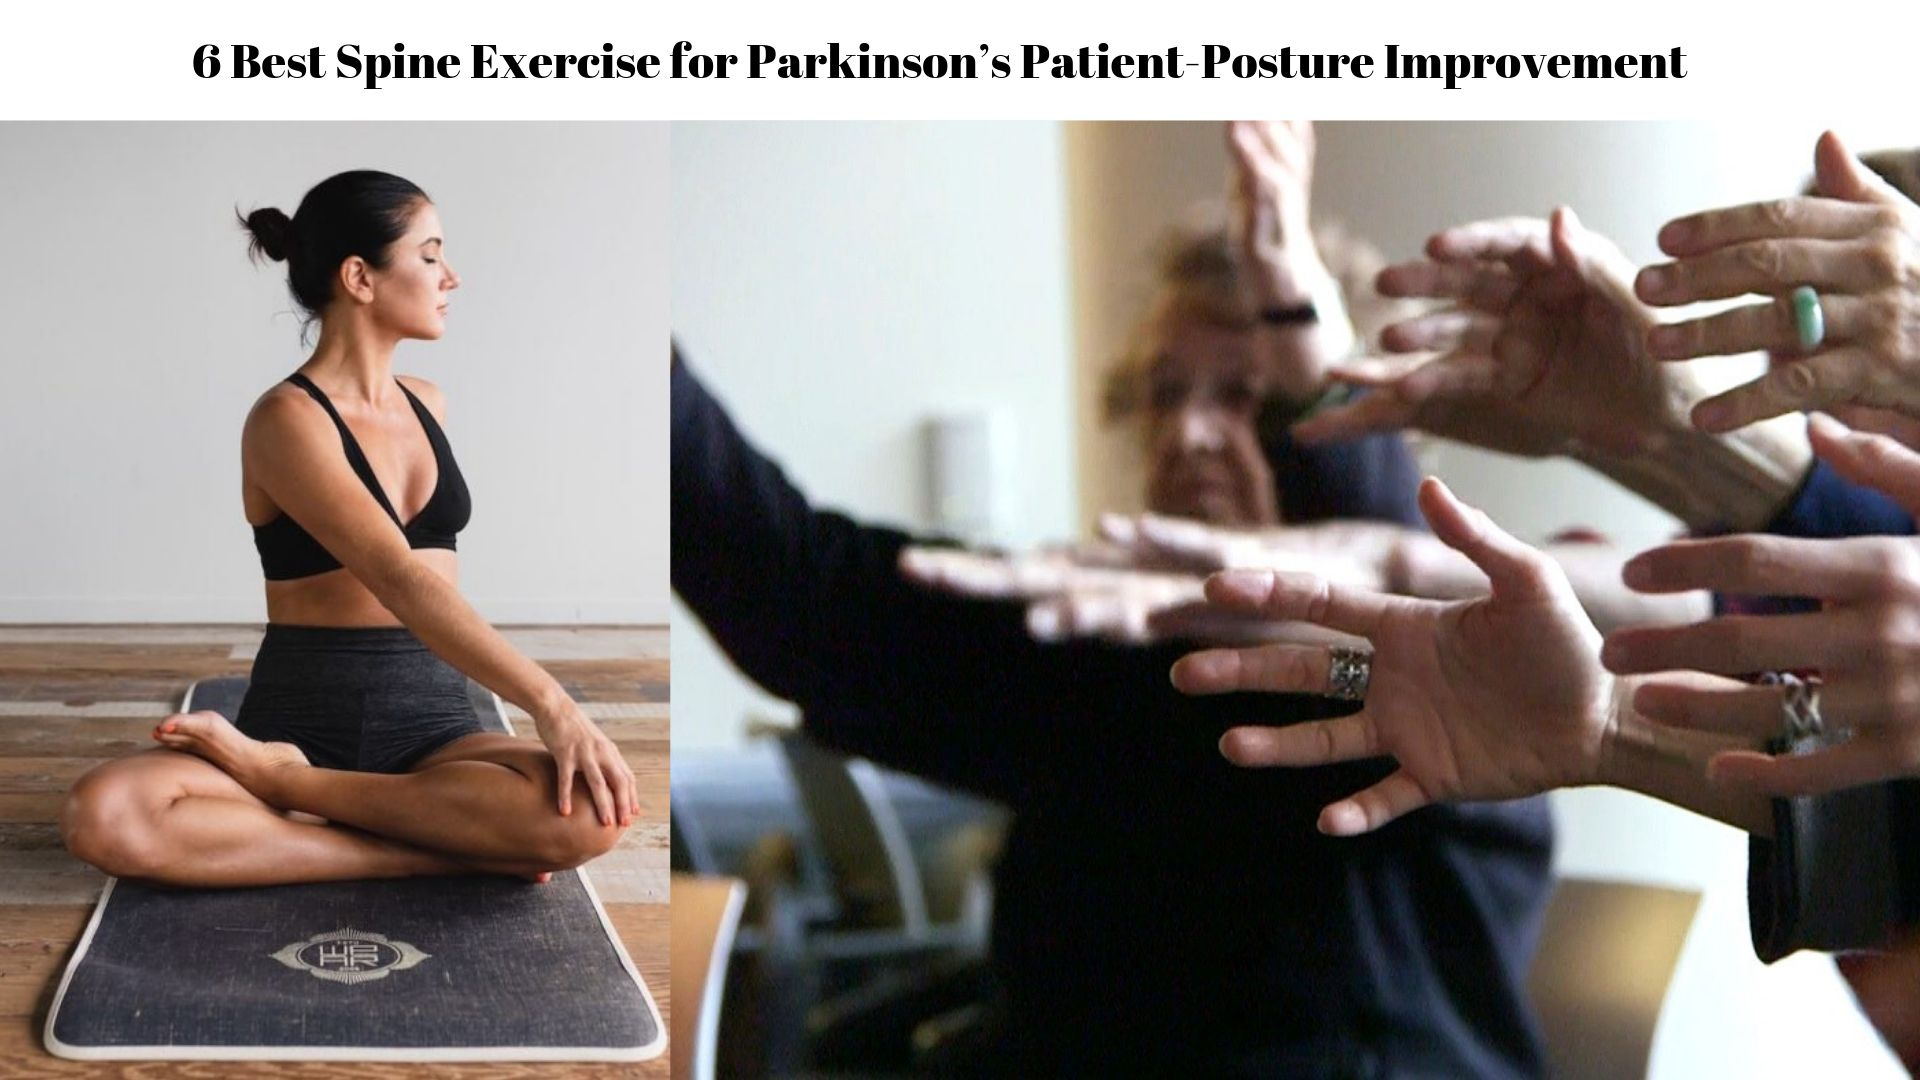 6 Best Spine Exercise for Parkinson's Patient-Posture Improvement